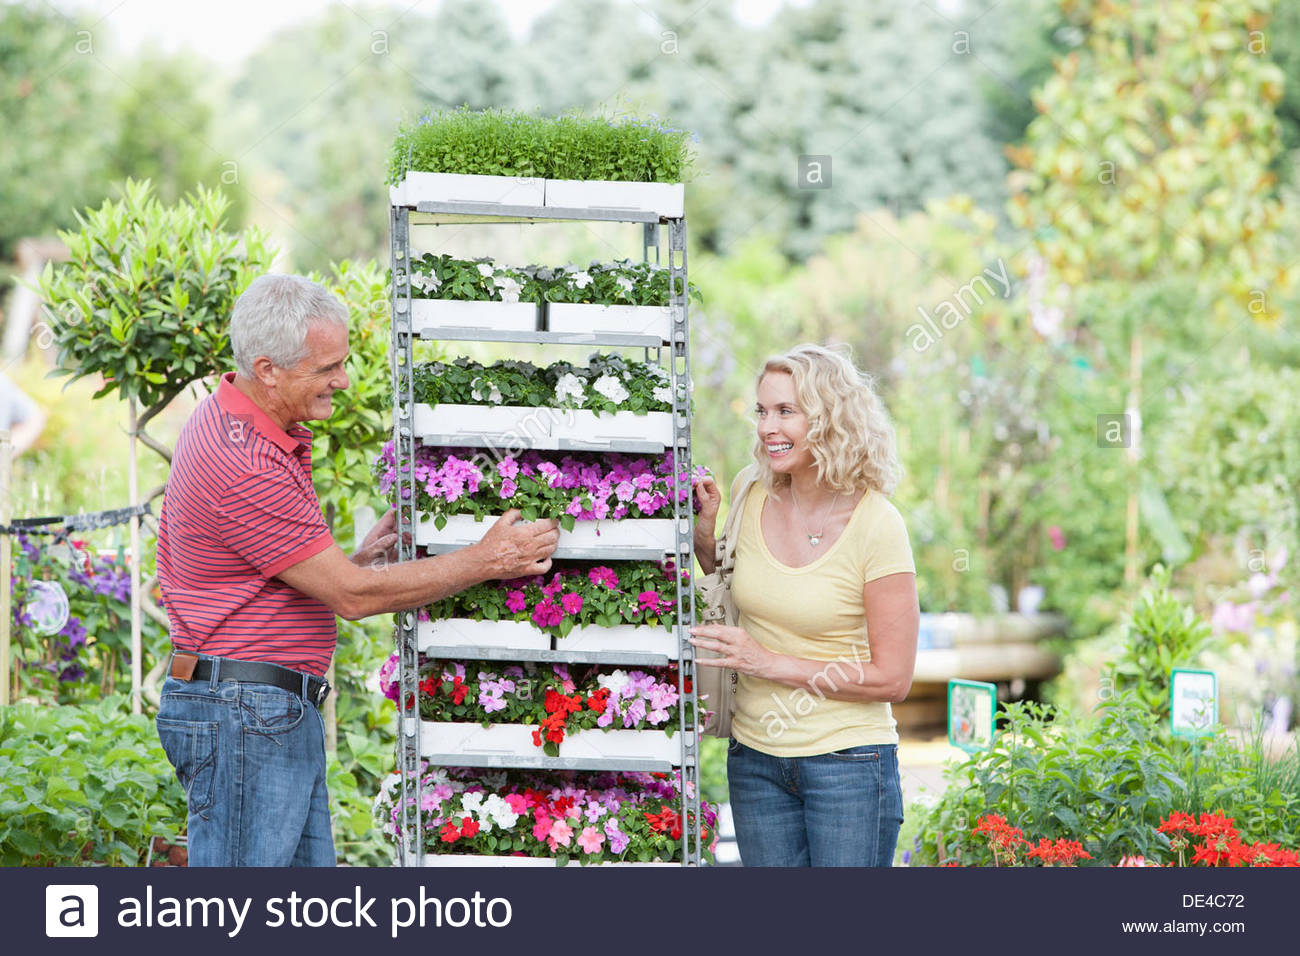 Couple shopping for flowers in nursery - Stock Image